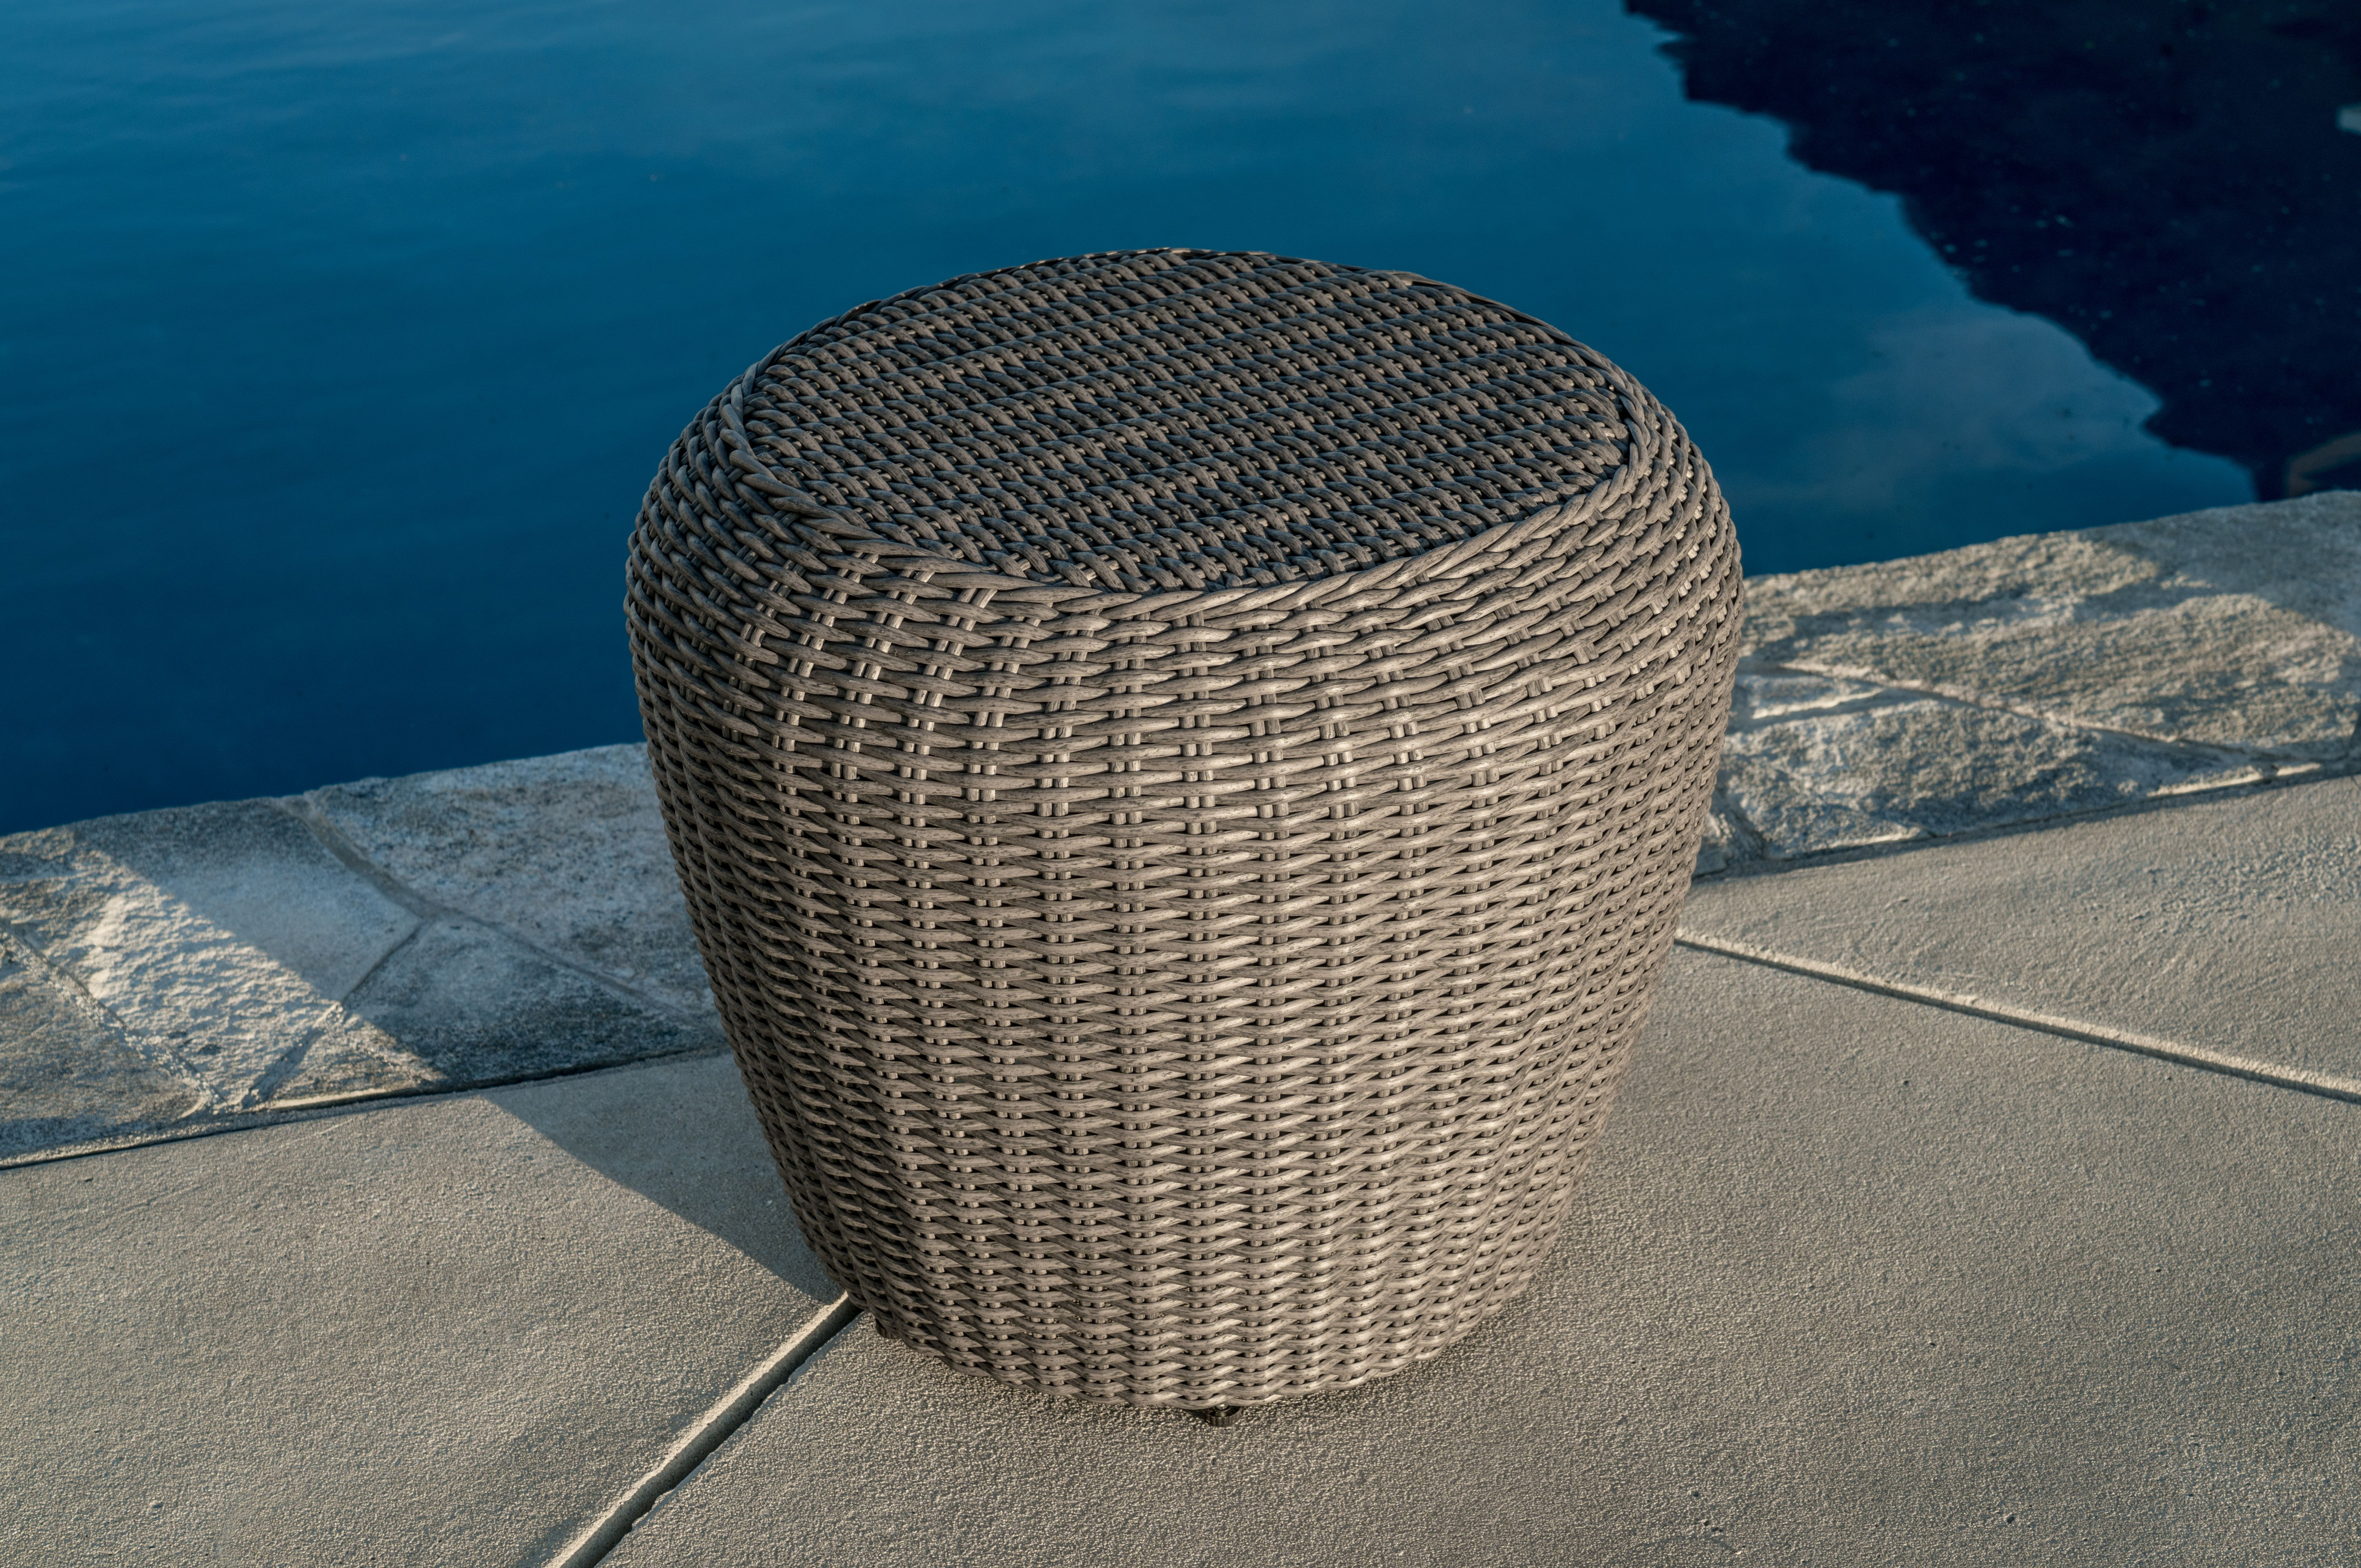 Super Durable Pe Wicker The Terra Vista Lounge Set Will Continue To Bring A Feeling Of Pride Every Time You Make Your Way Out Outdoor Oasis